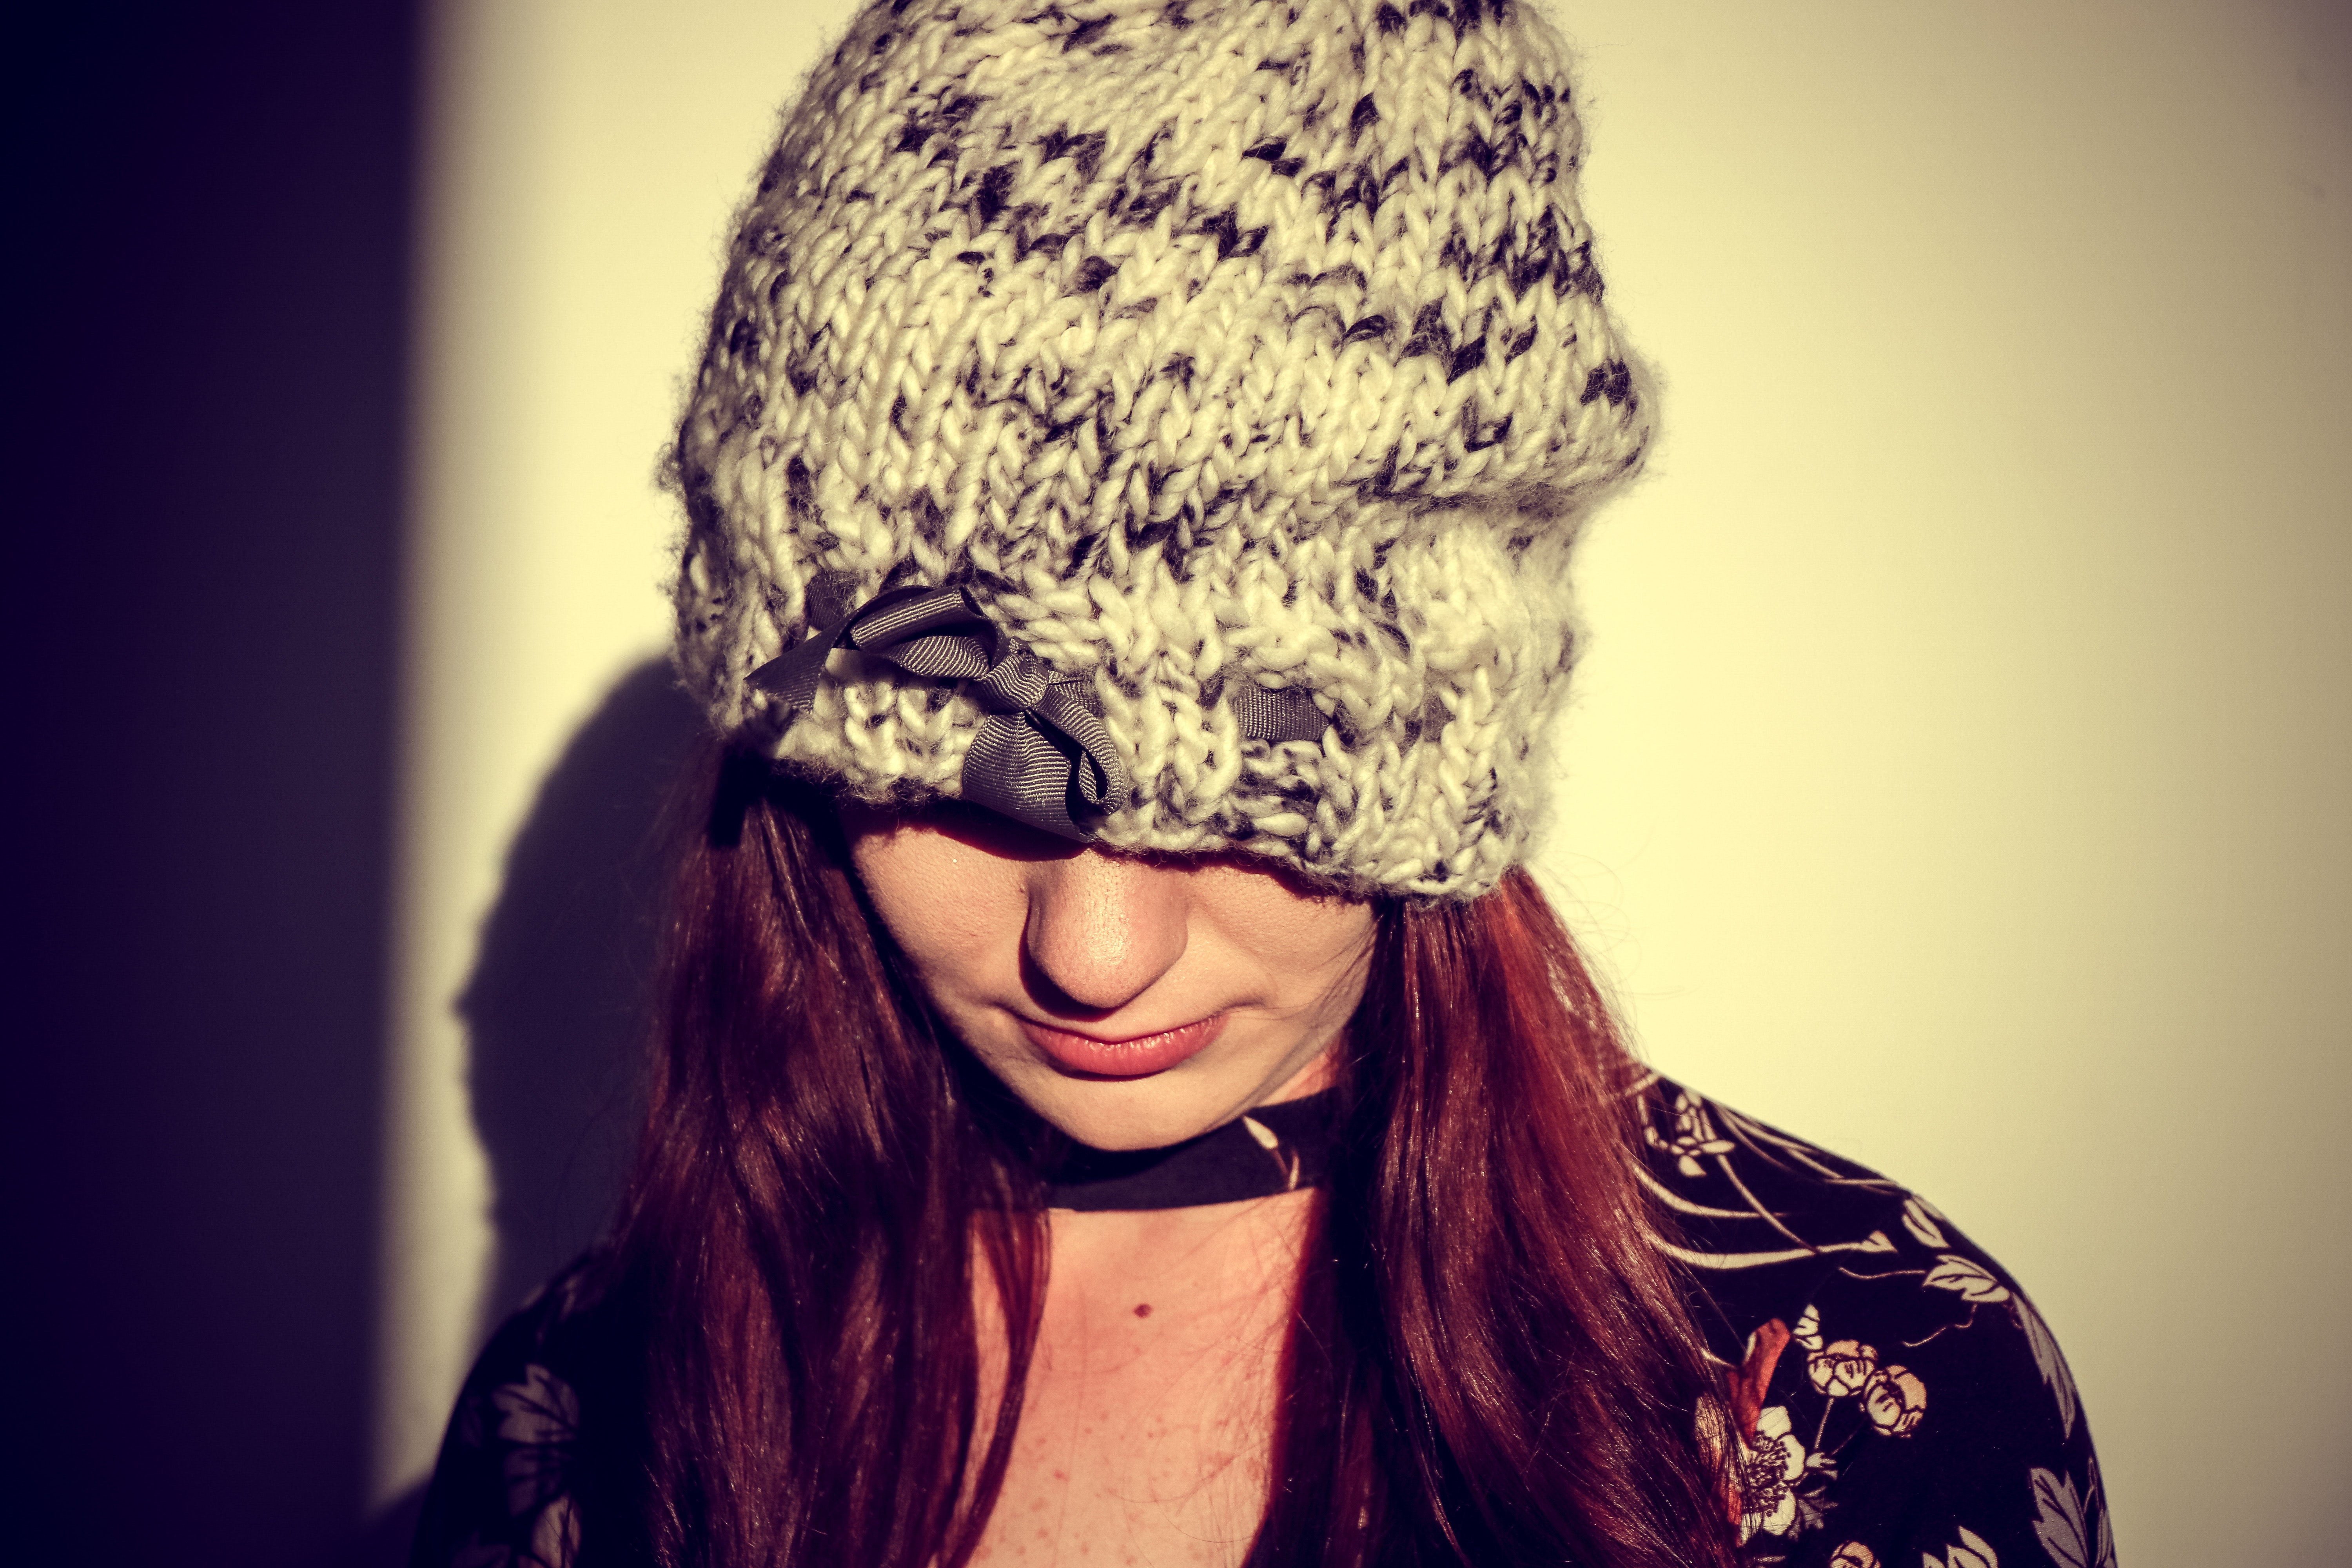 Woman Wearing Black and Gray Knit Cap in the White Wall Paint Room, Adult, Model, Woman, Wear, HQ Photo